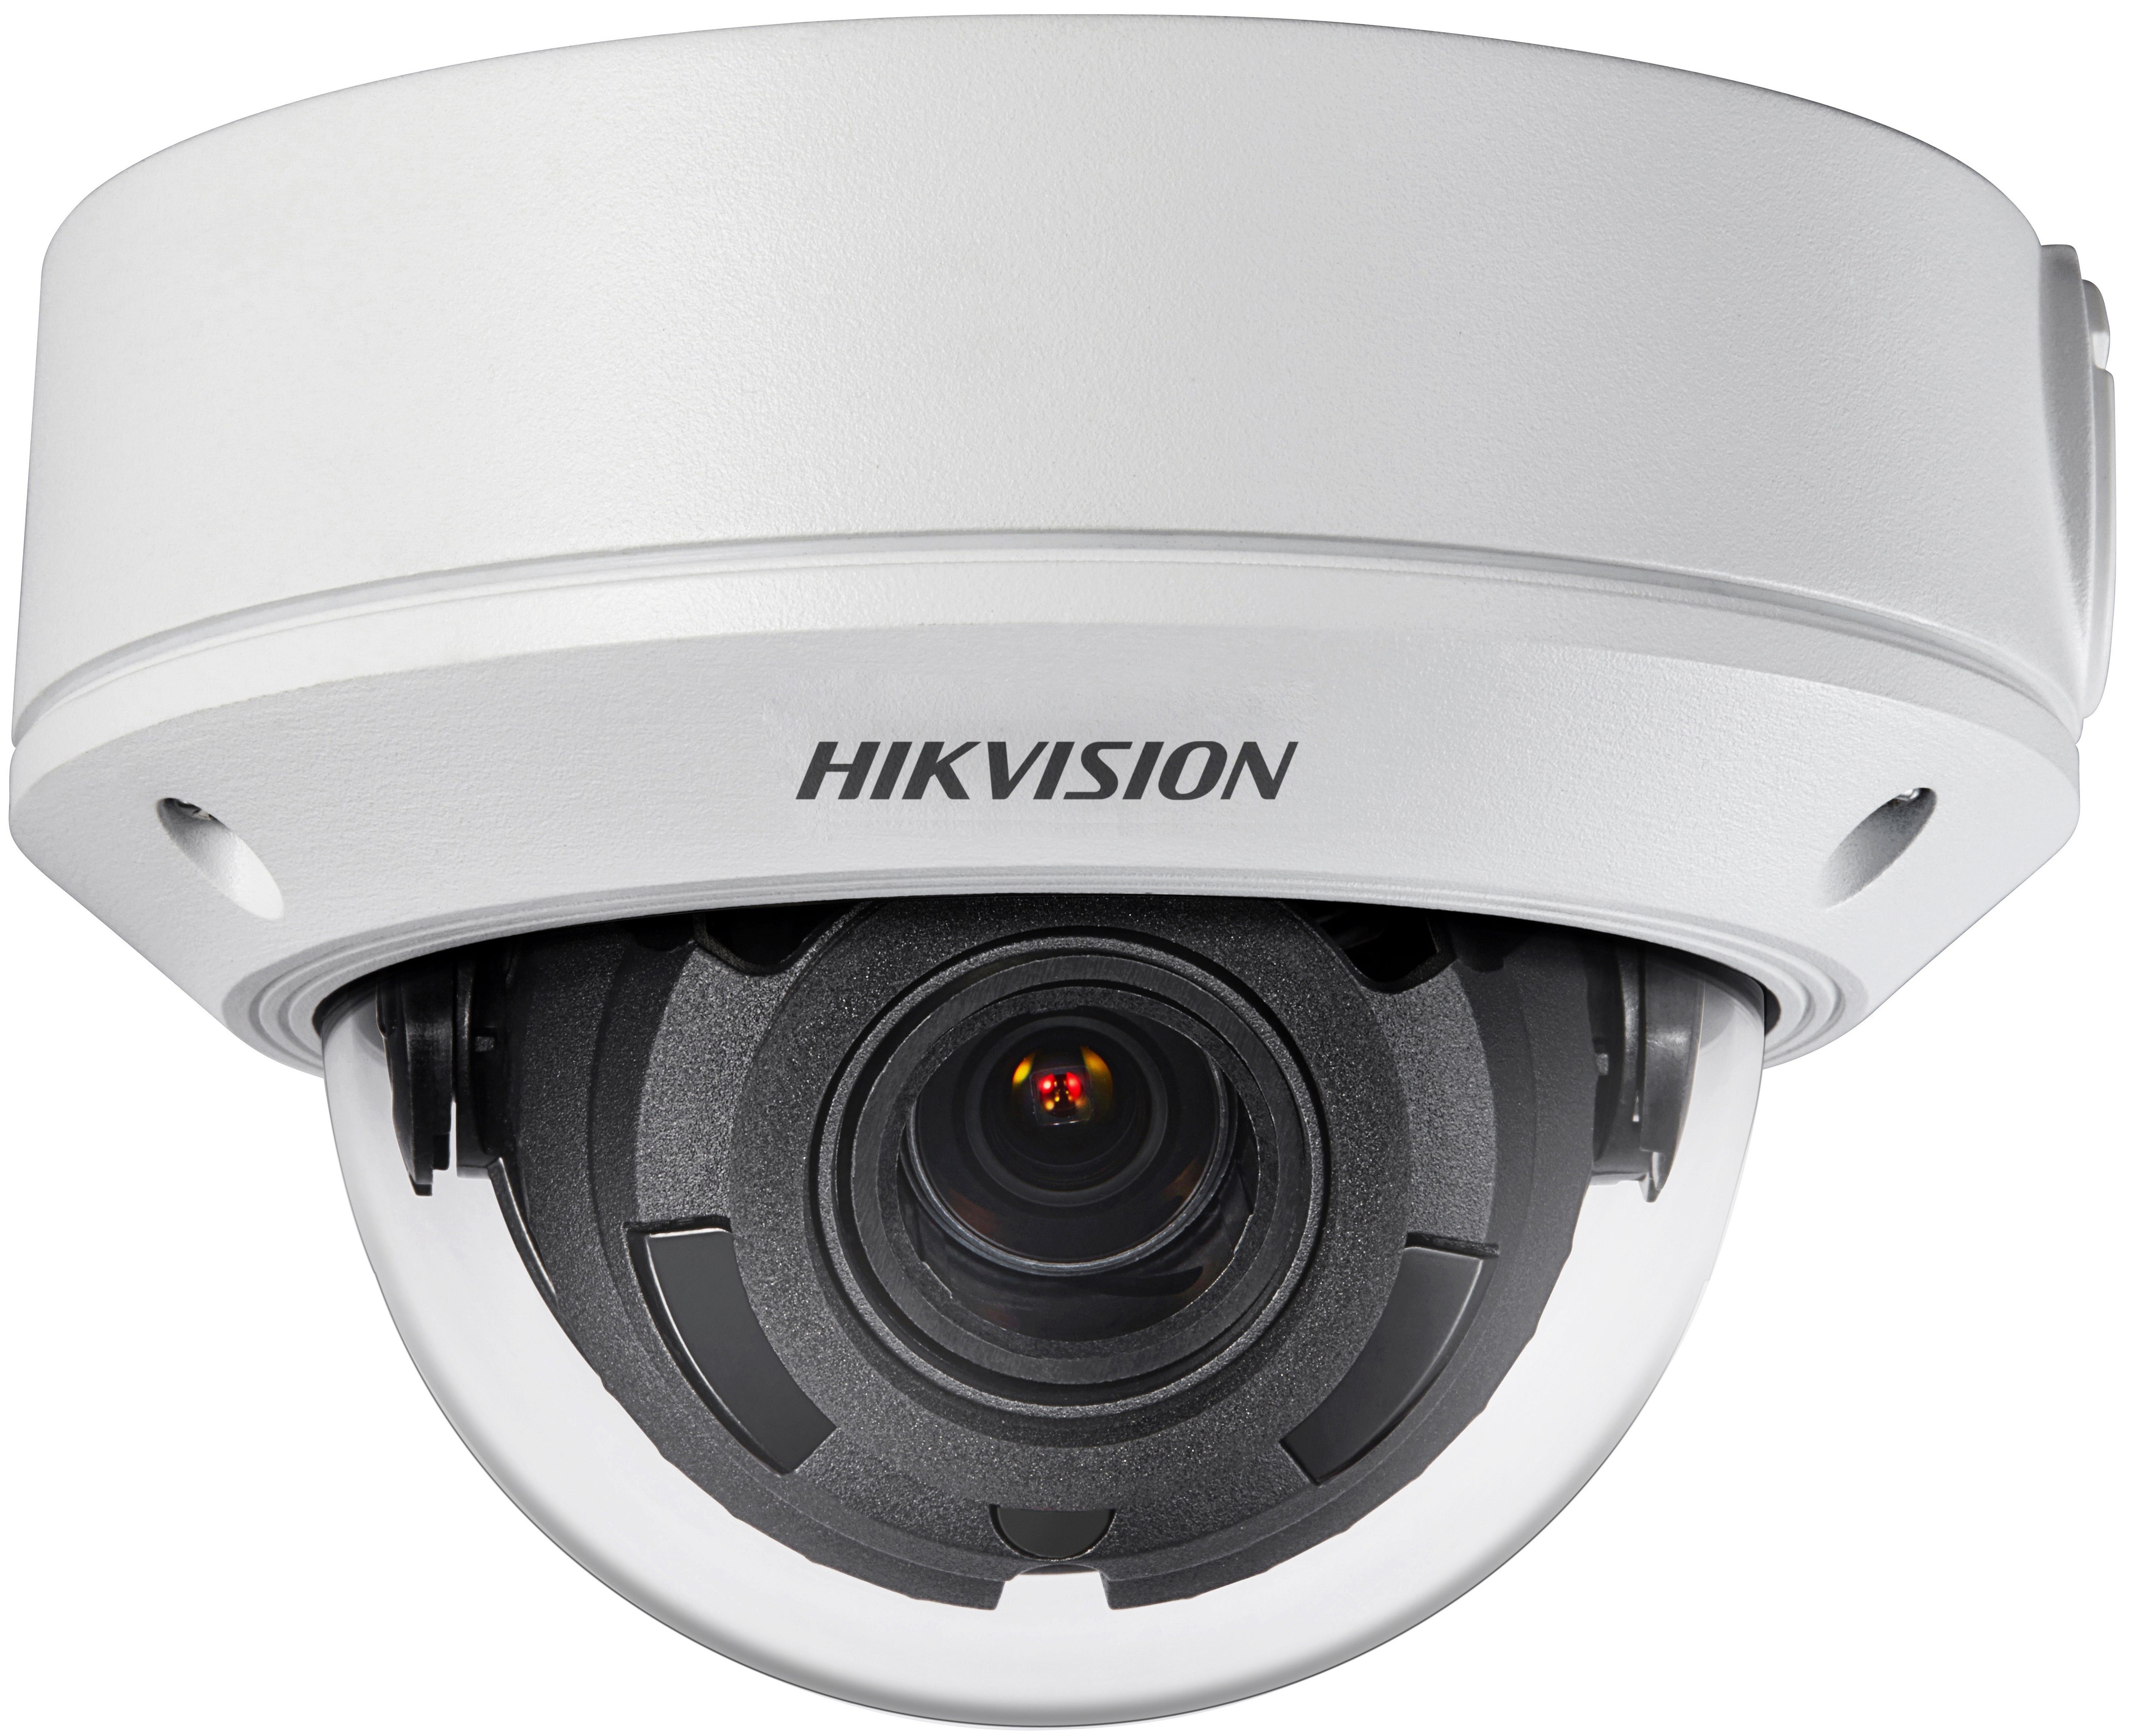 Hikvision DS-2CD1743G0-IZ 2.8-12mm